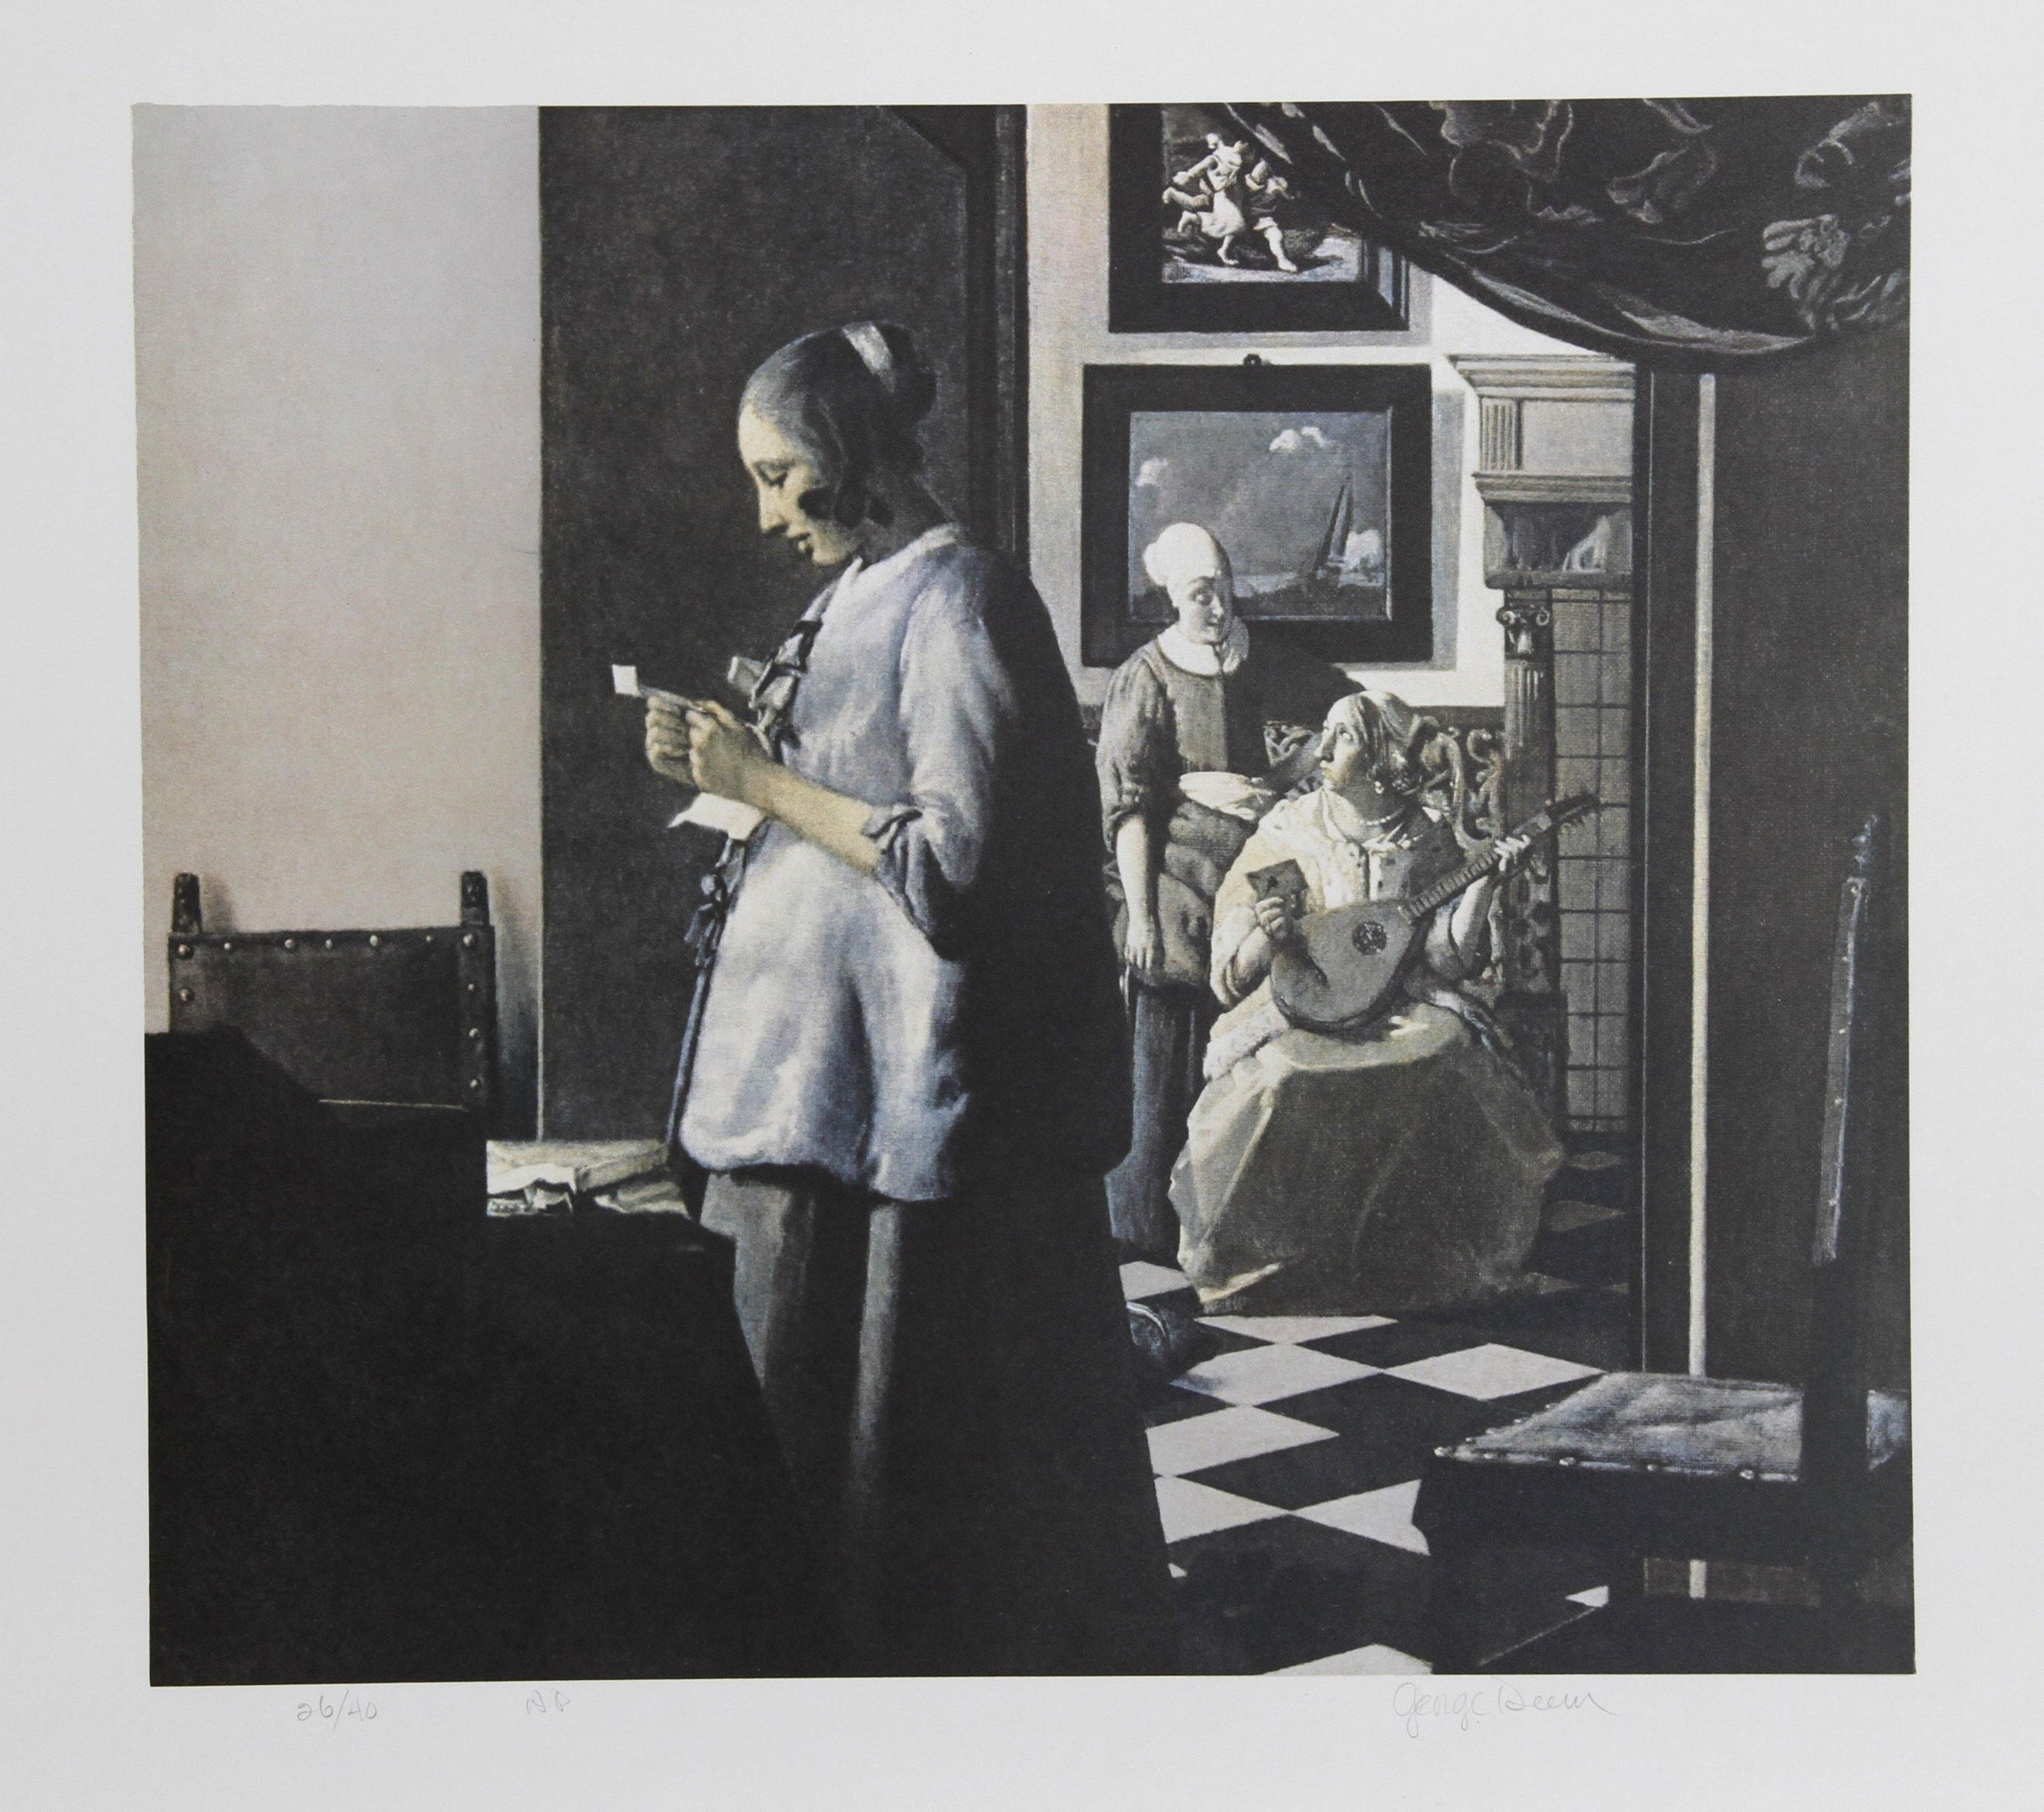 George Deem, Letter from Picasso Lithograph - RoGallery